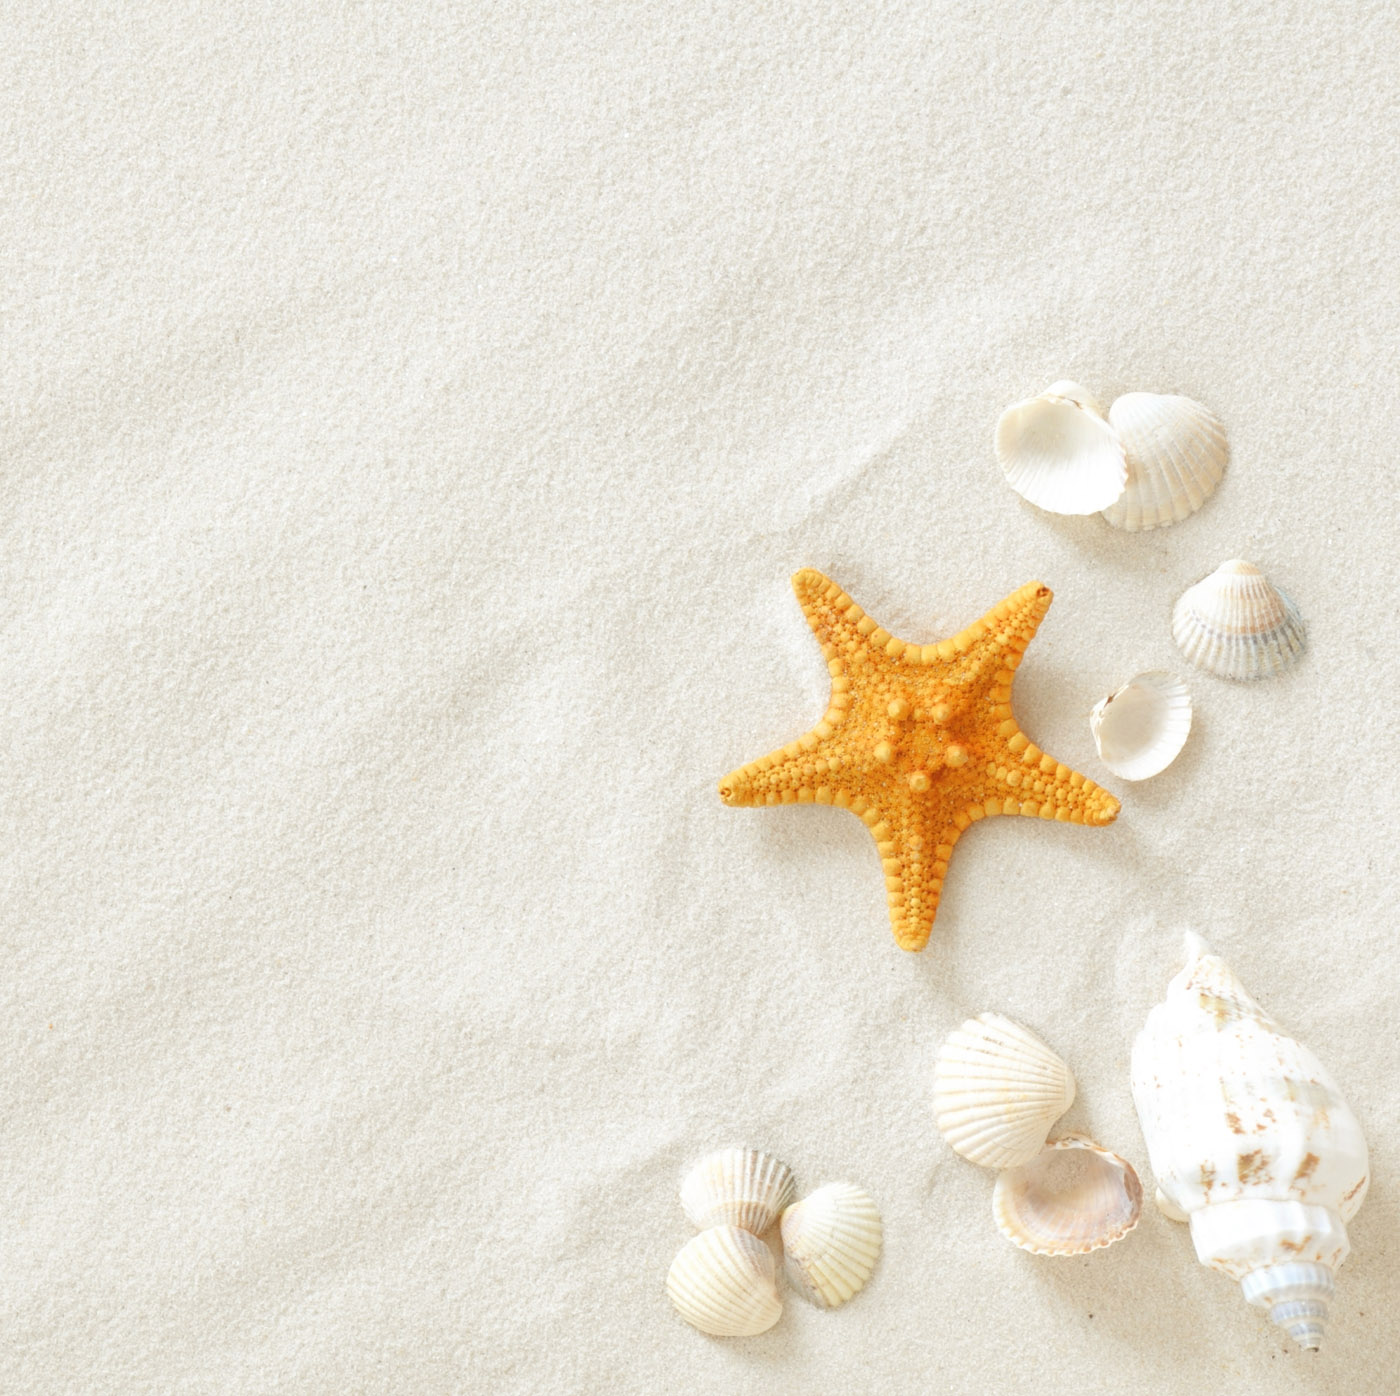 Beach sand and shells 23566